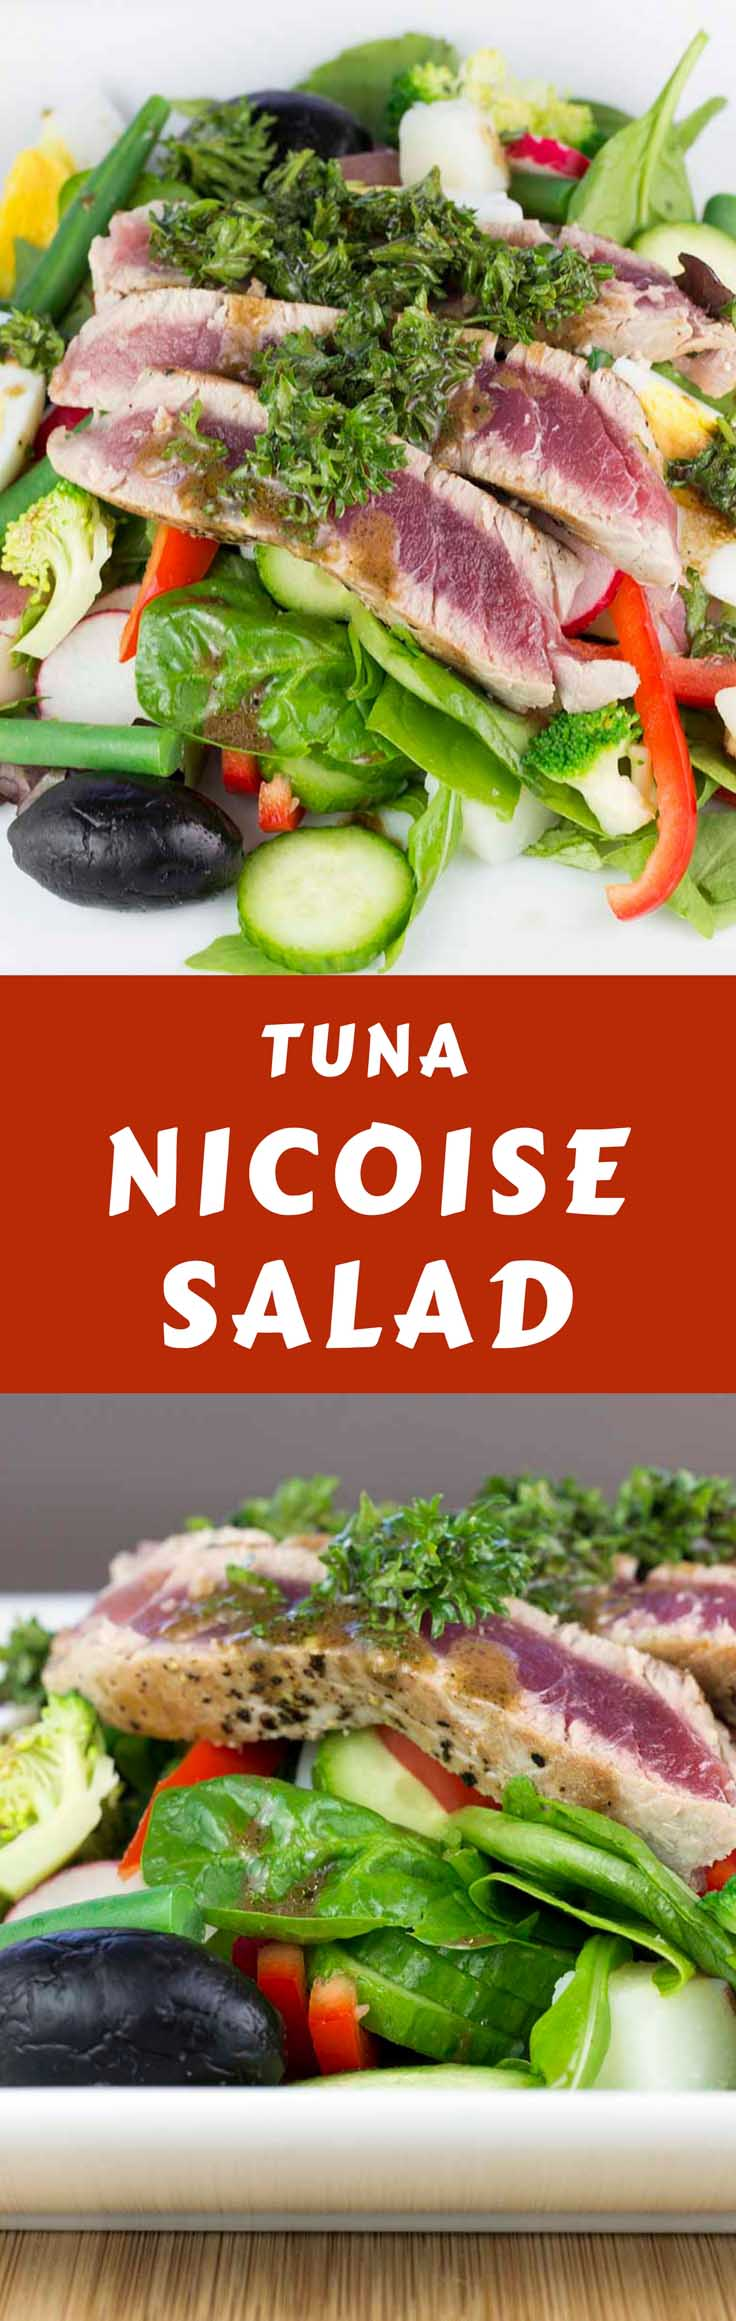 A fresh take on the classic Tuna Nicoise Salad with a slightly spicy parsley and mustard dressing. Super healthy and easy to make. #saladnicoise #lowcarbsalad #ahituna #proteinsalad